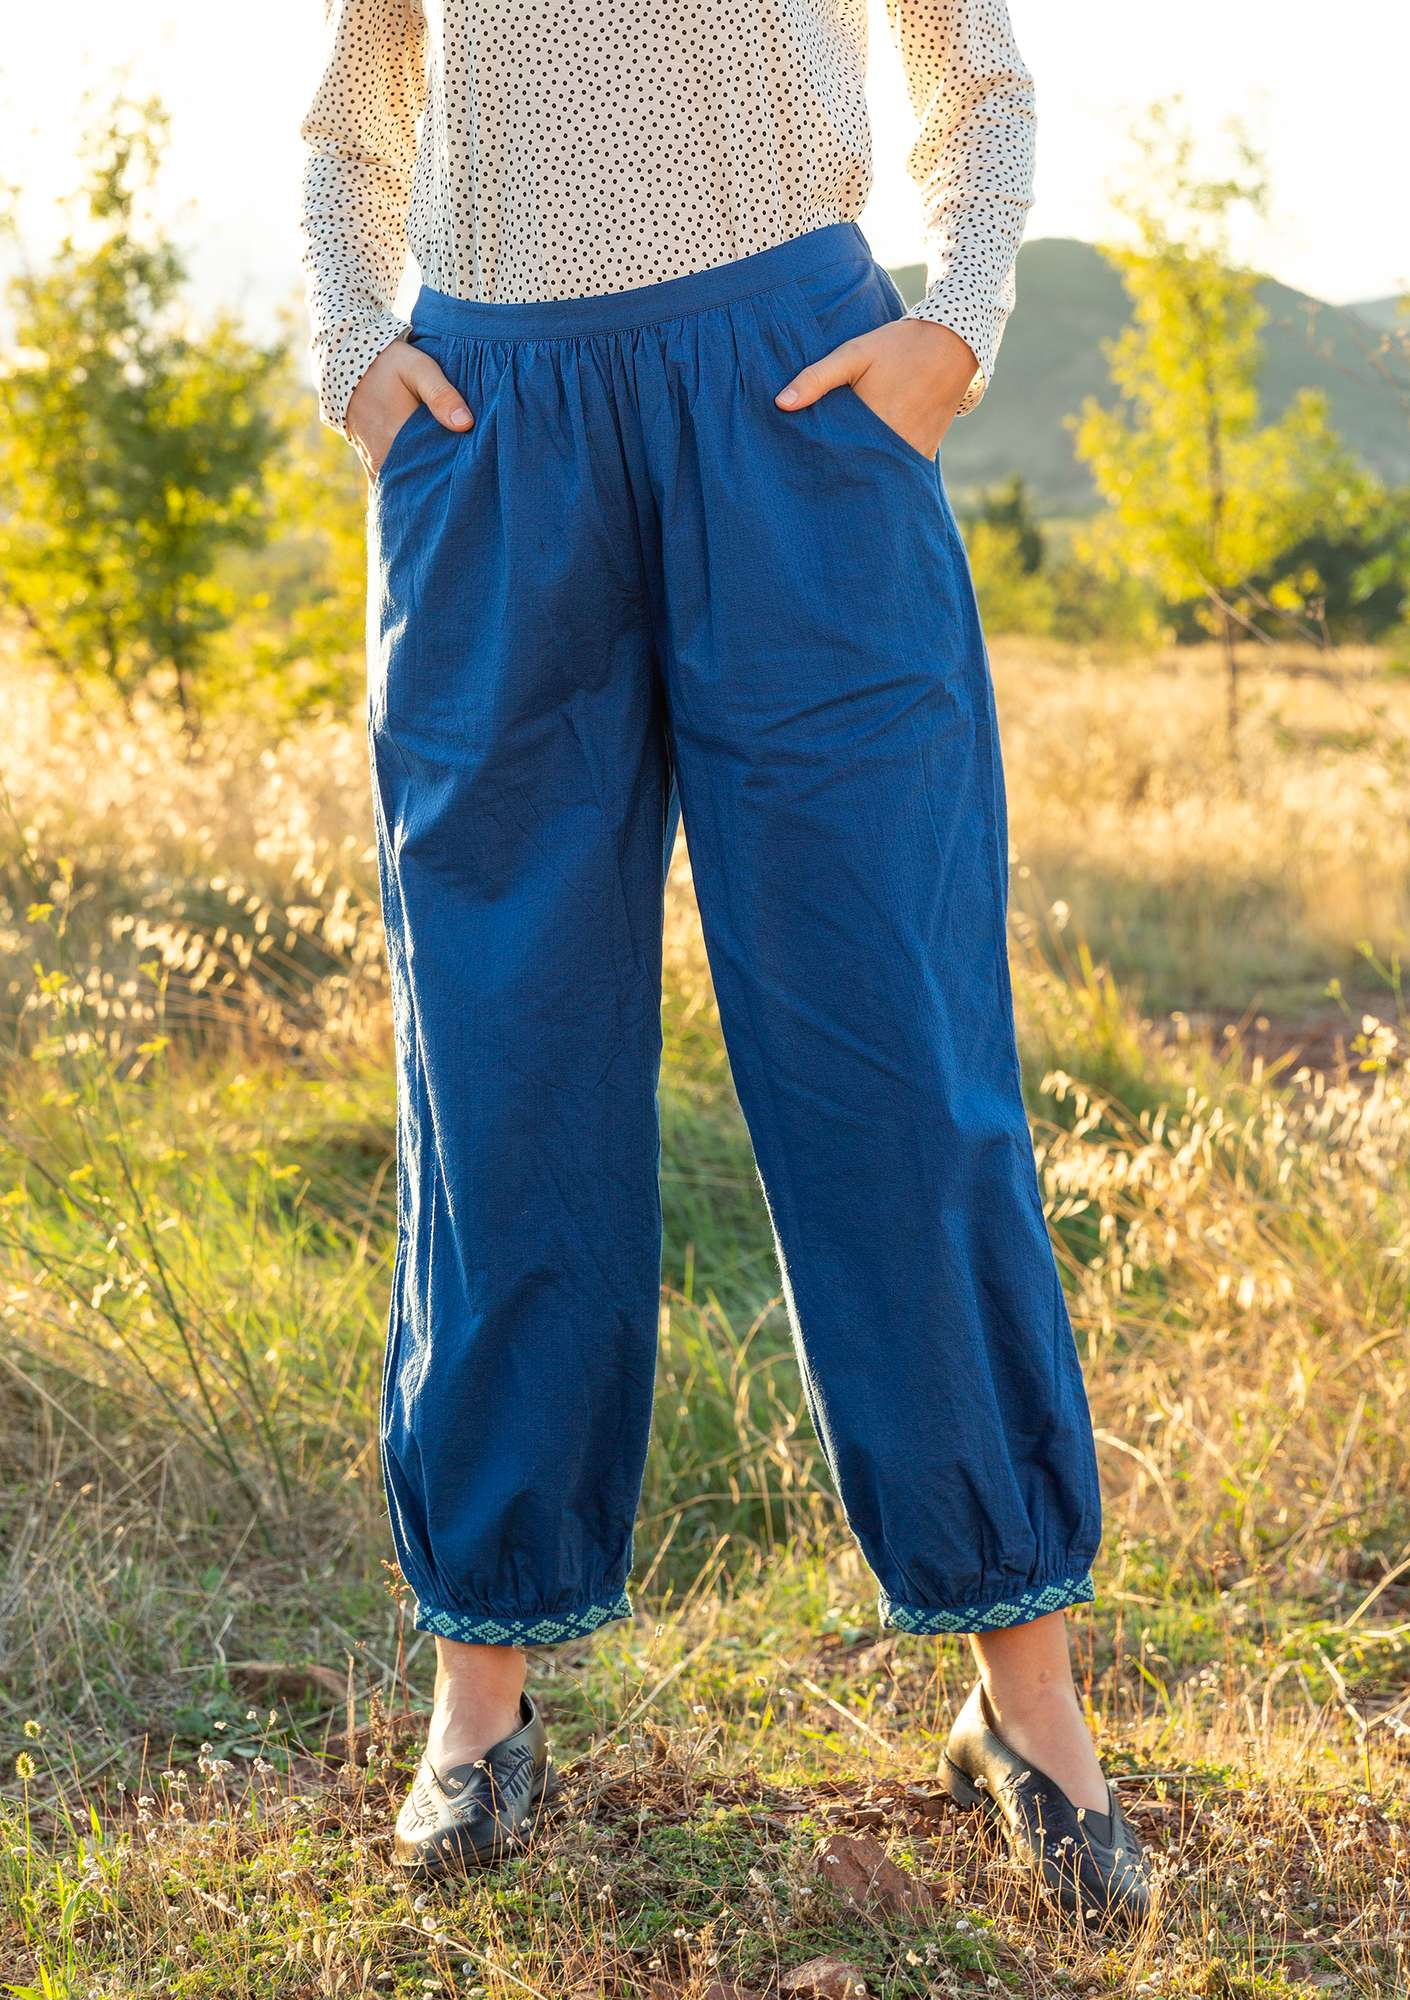 Mimi pants porcelain blue